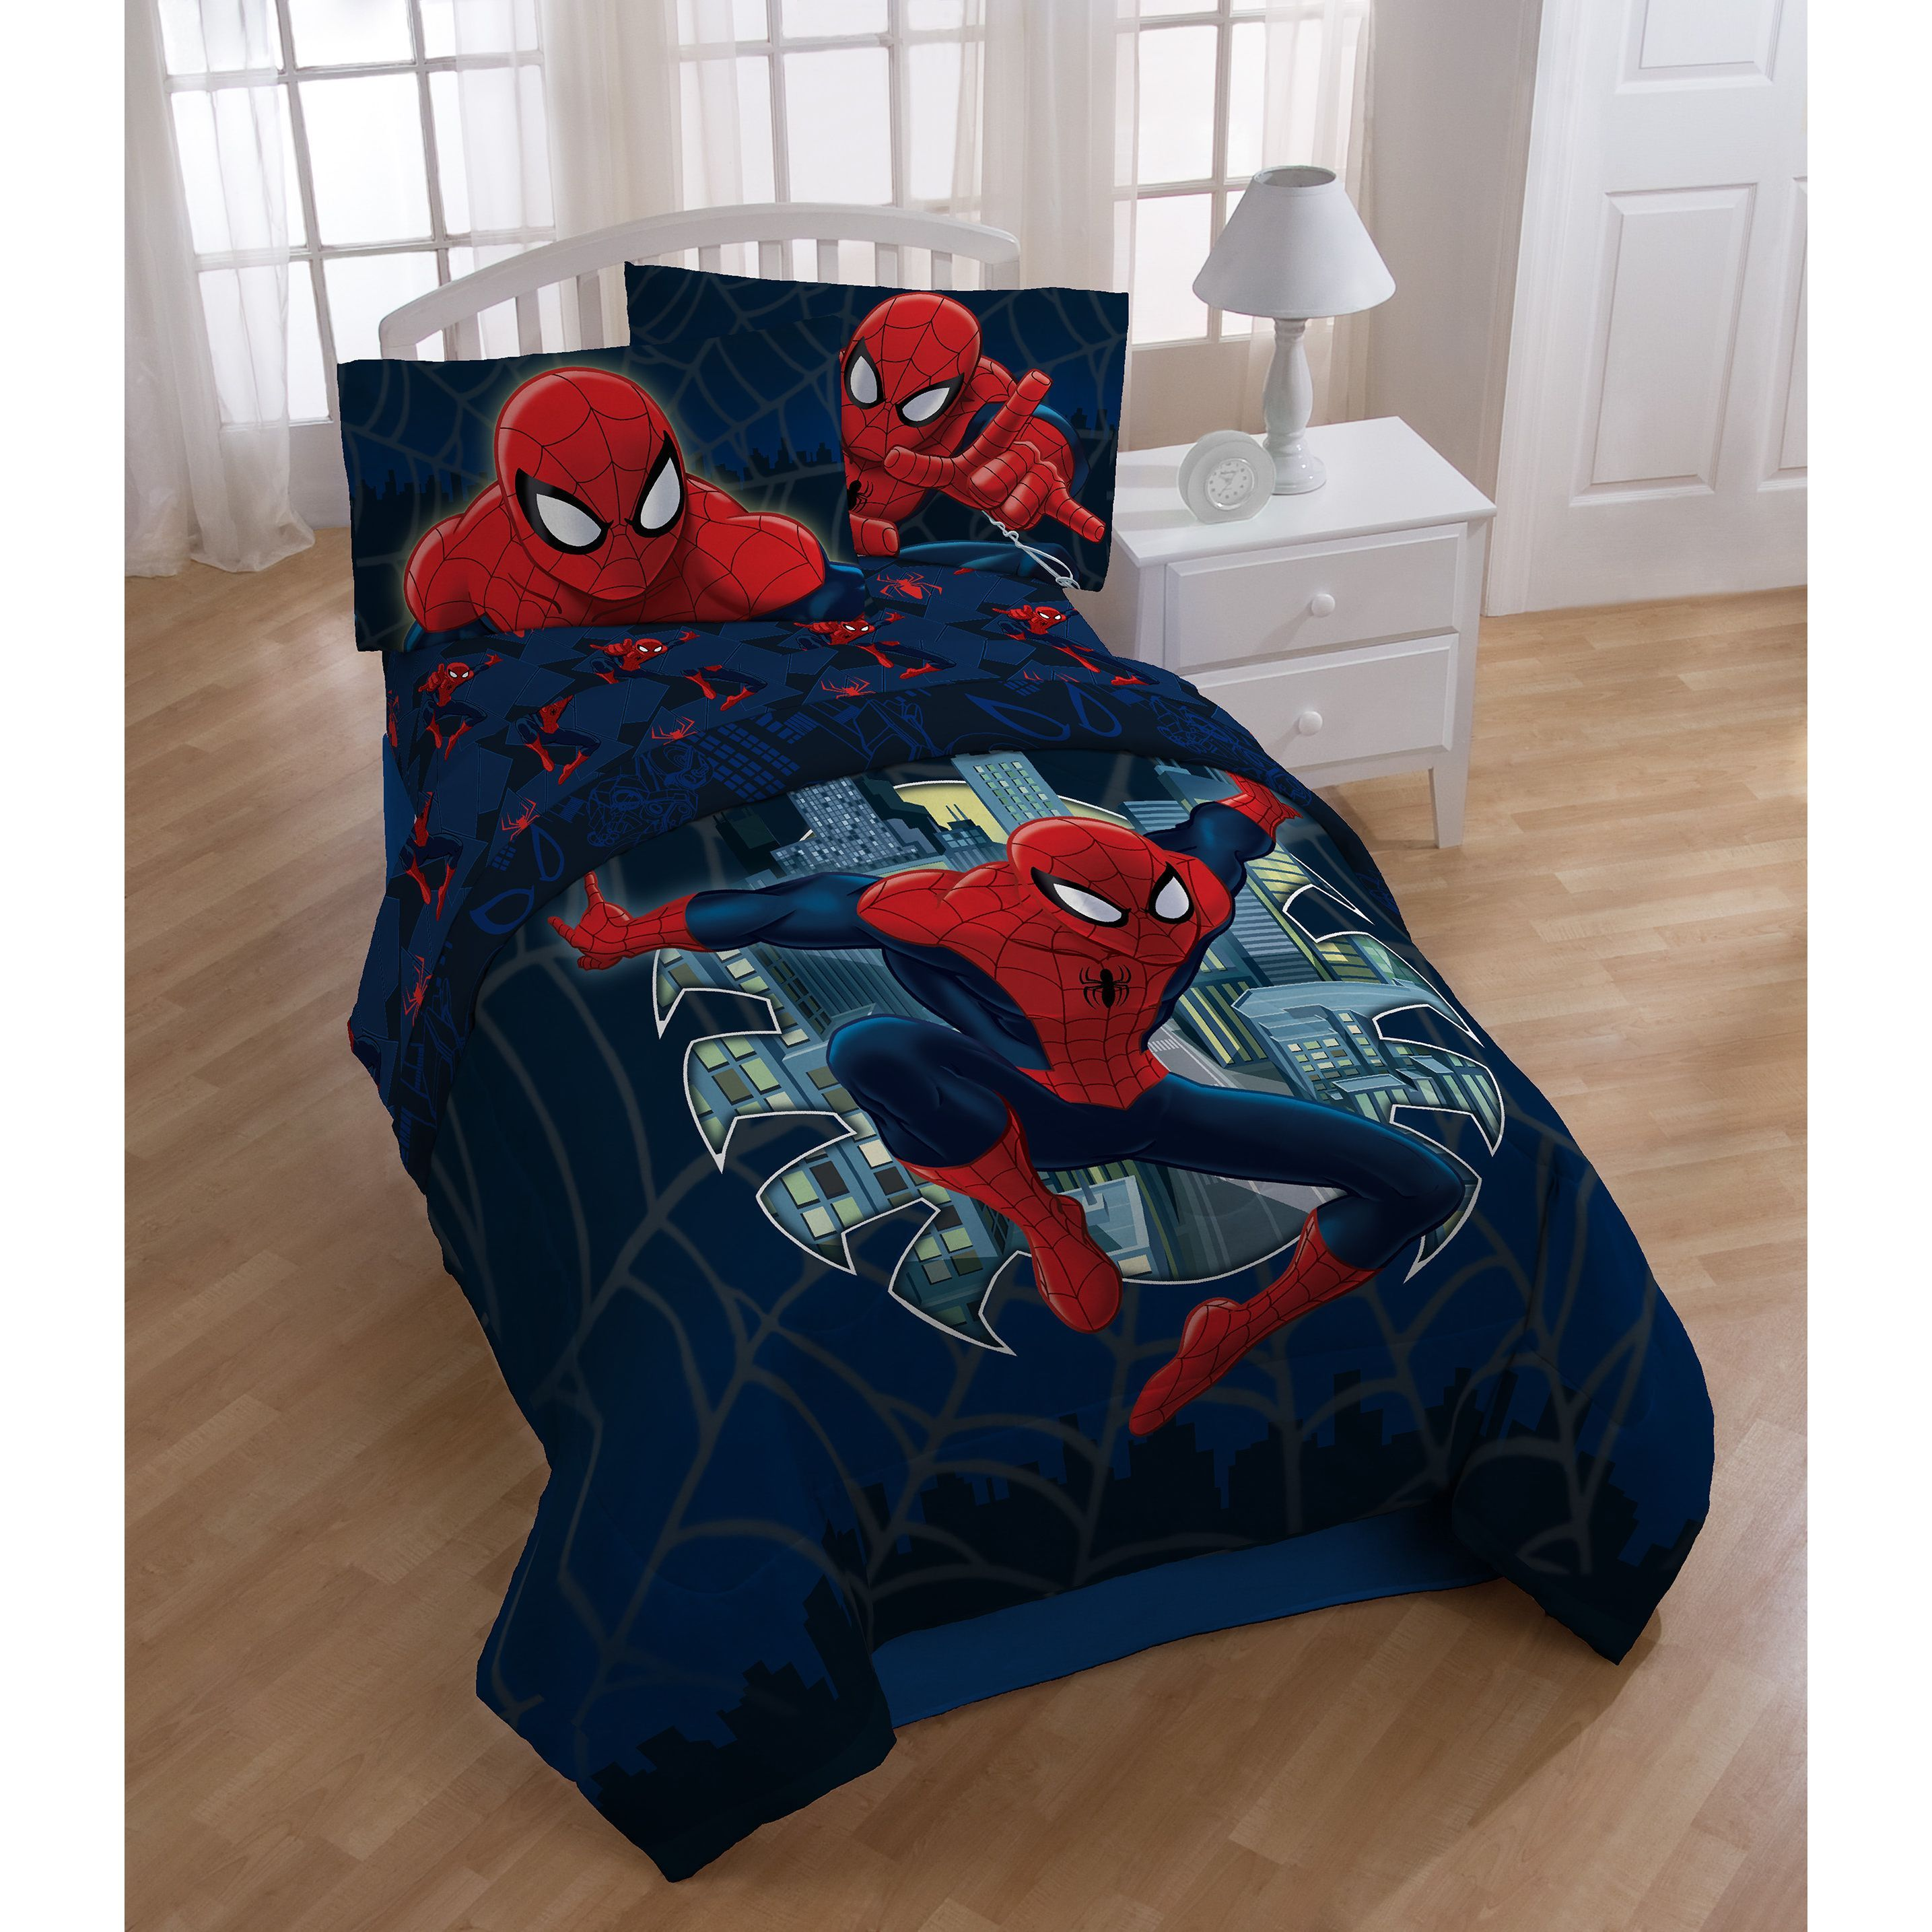 With A Fun Spiderman Design And Comfortable Yet Durable Polyester